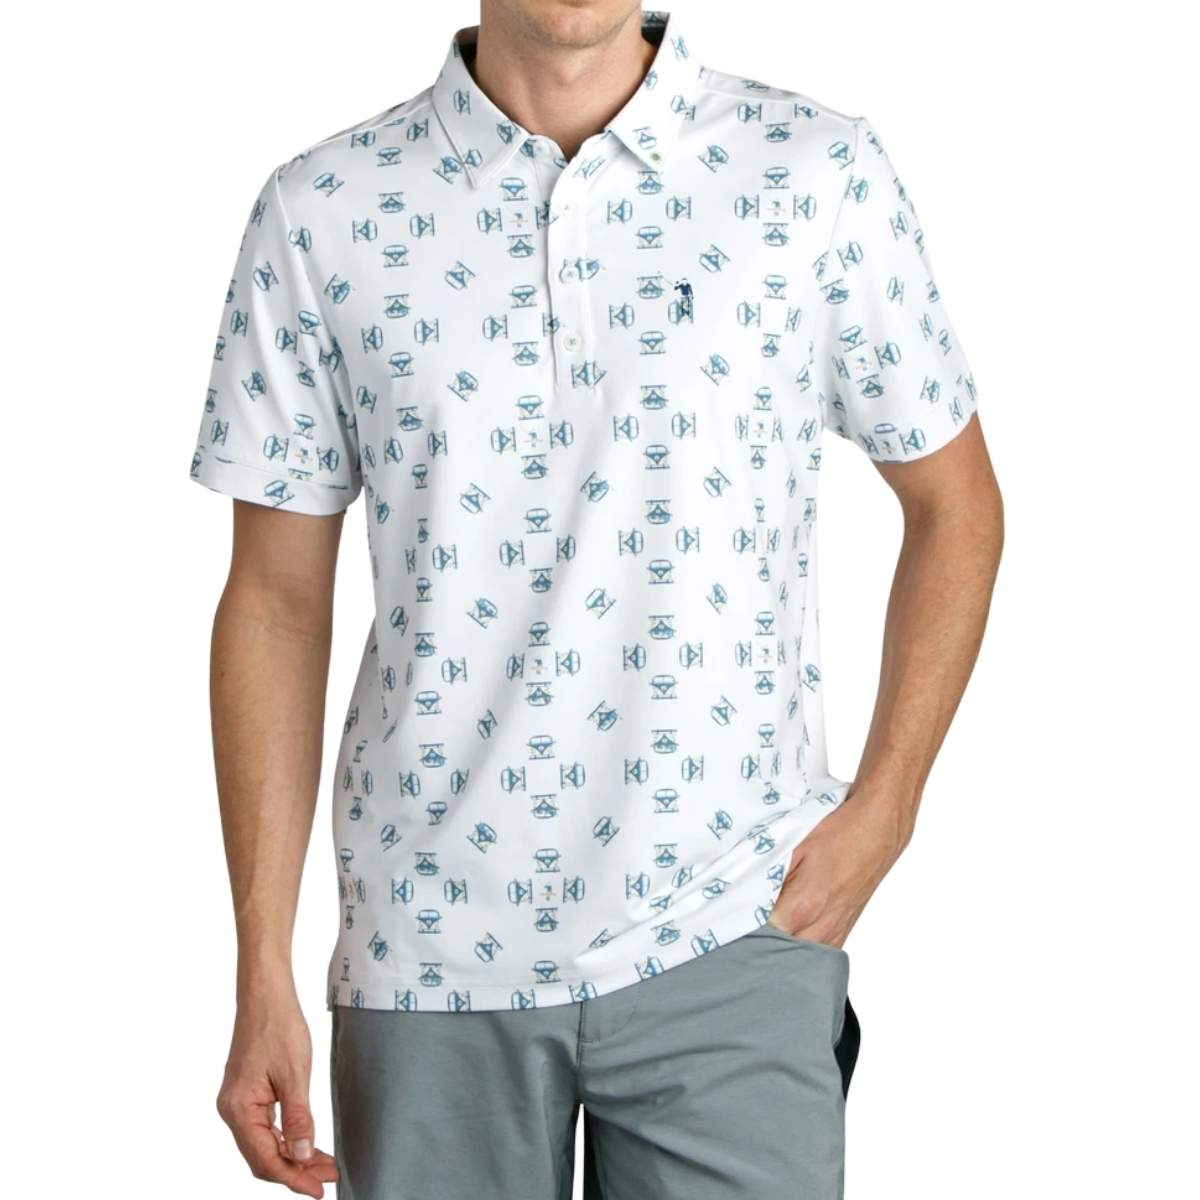 William Murray Air Cooled Polo